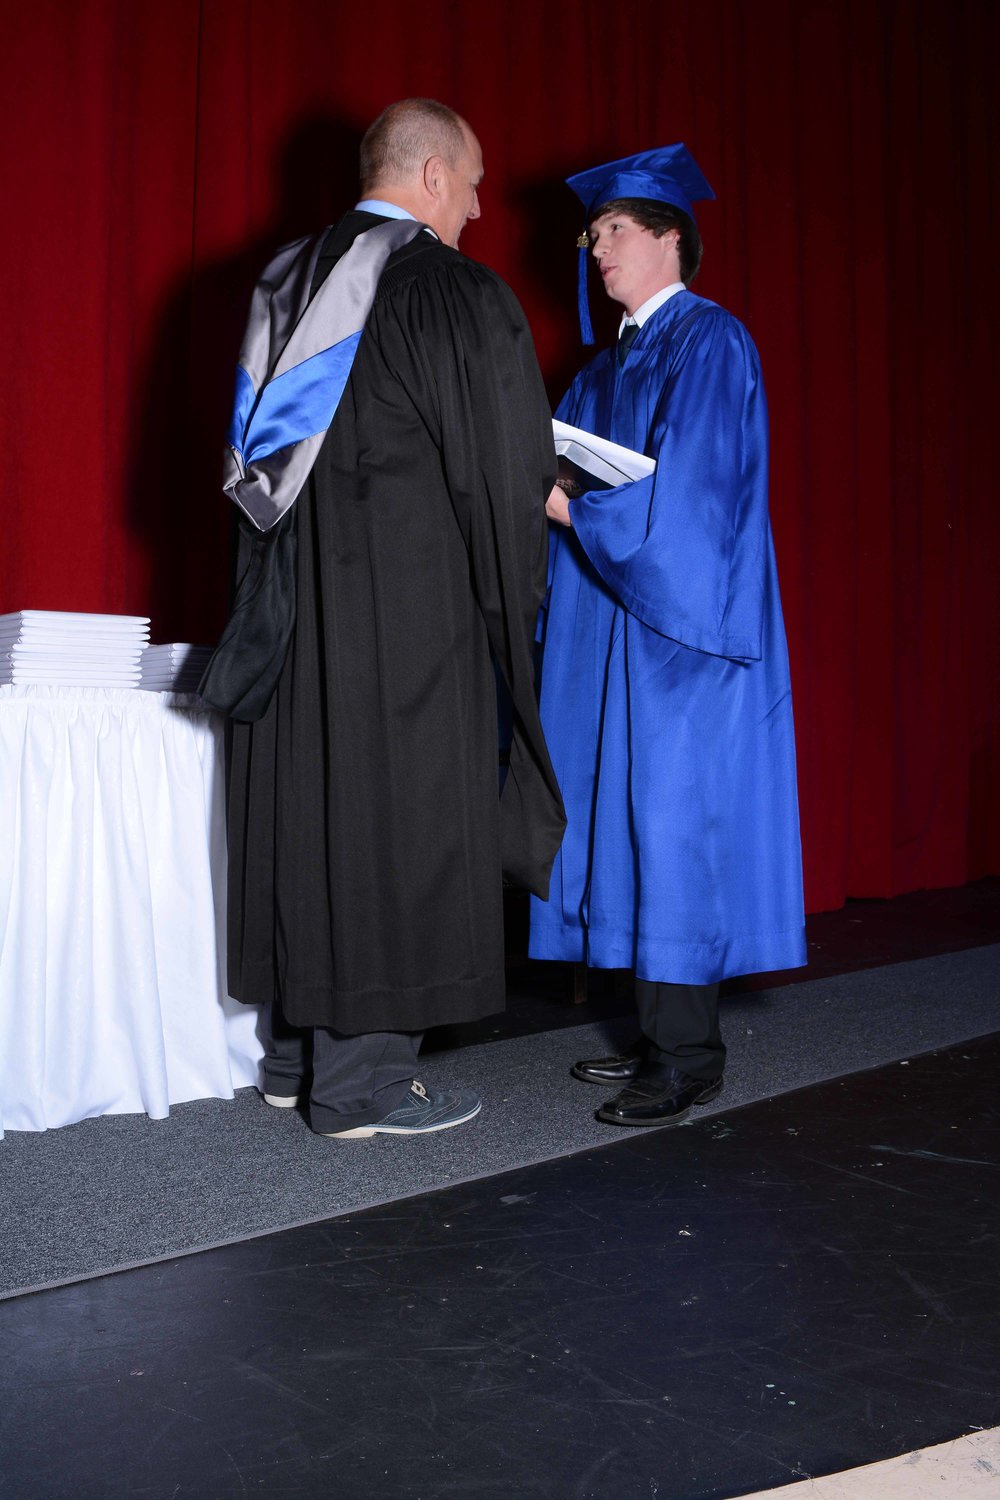 May14 Commencement119.jpg